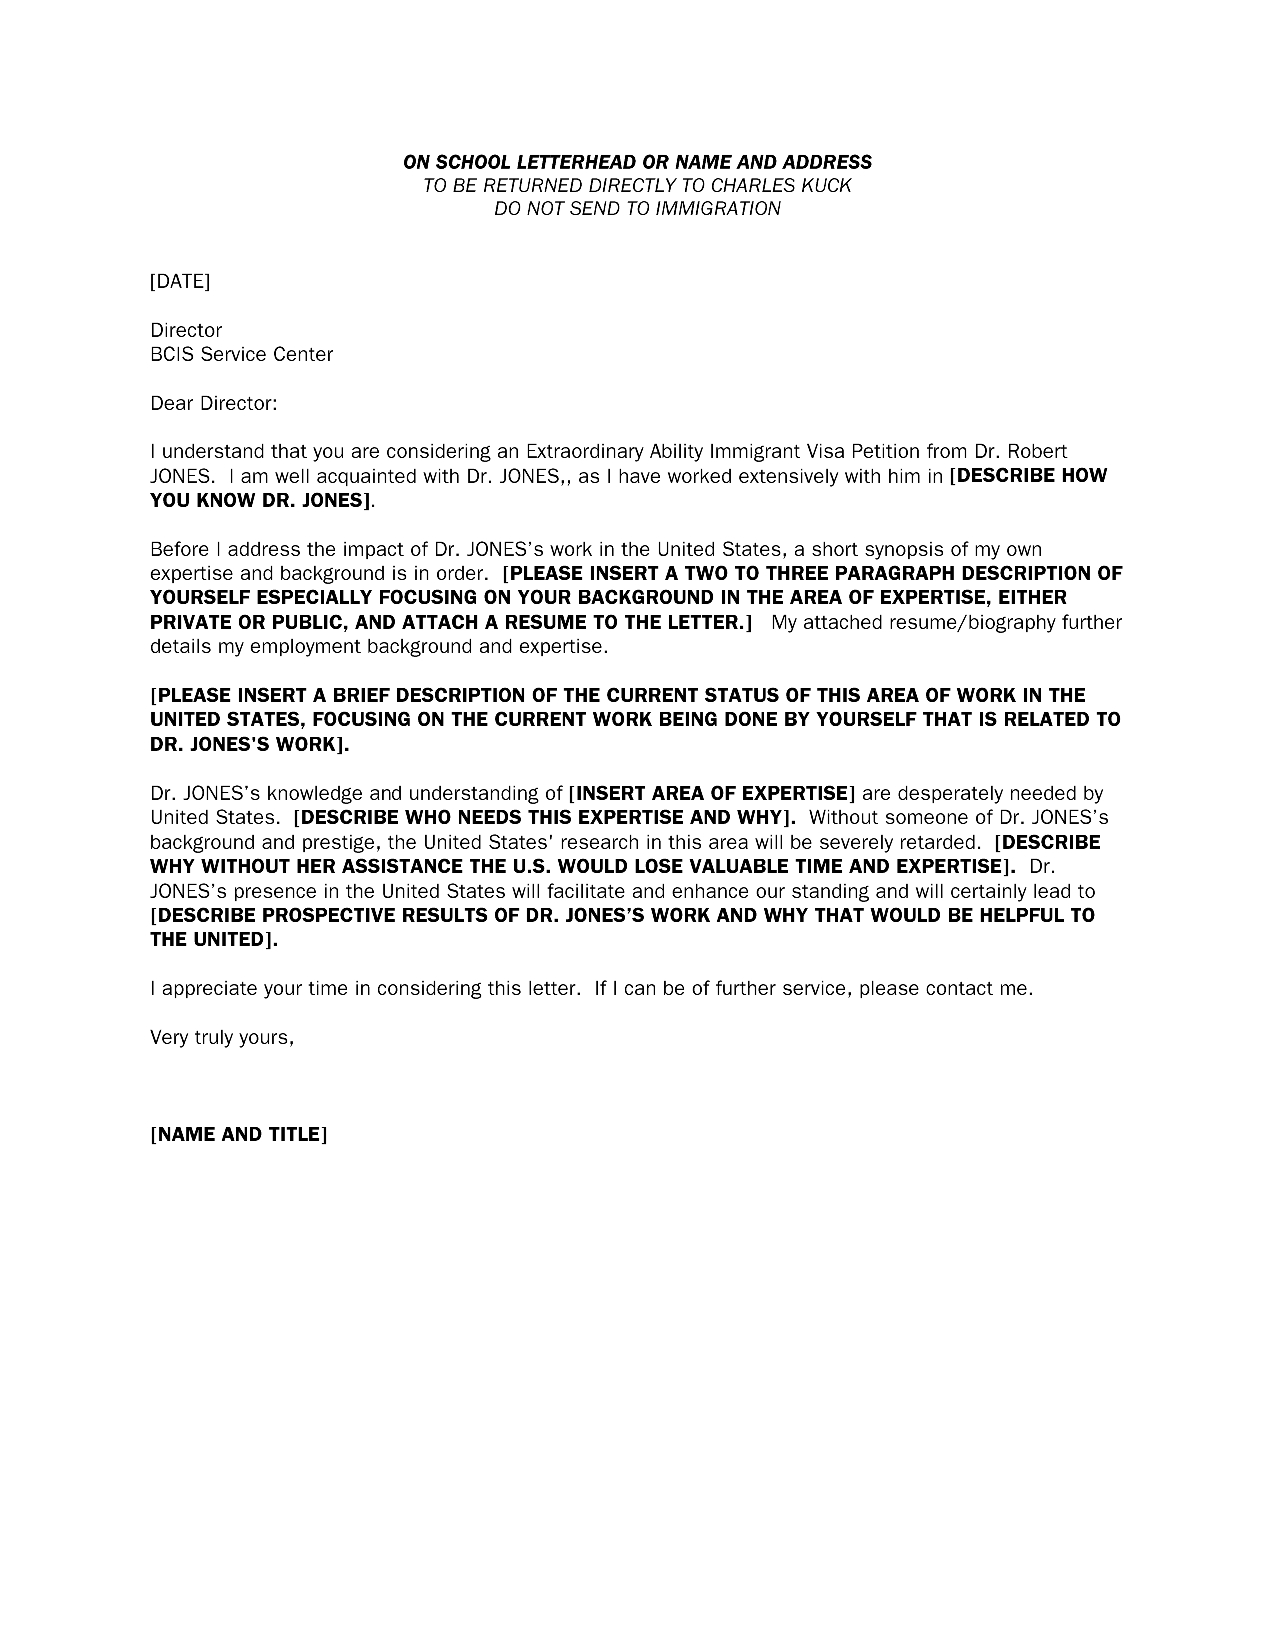 Immigration Reference Letter Template - Personal Re Mendation Letter Sample for Immigration Neuer